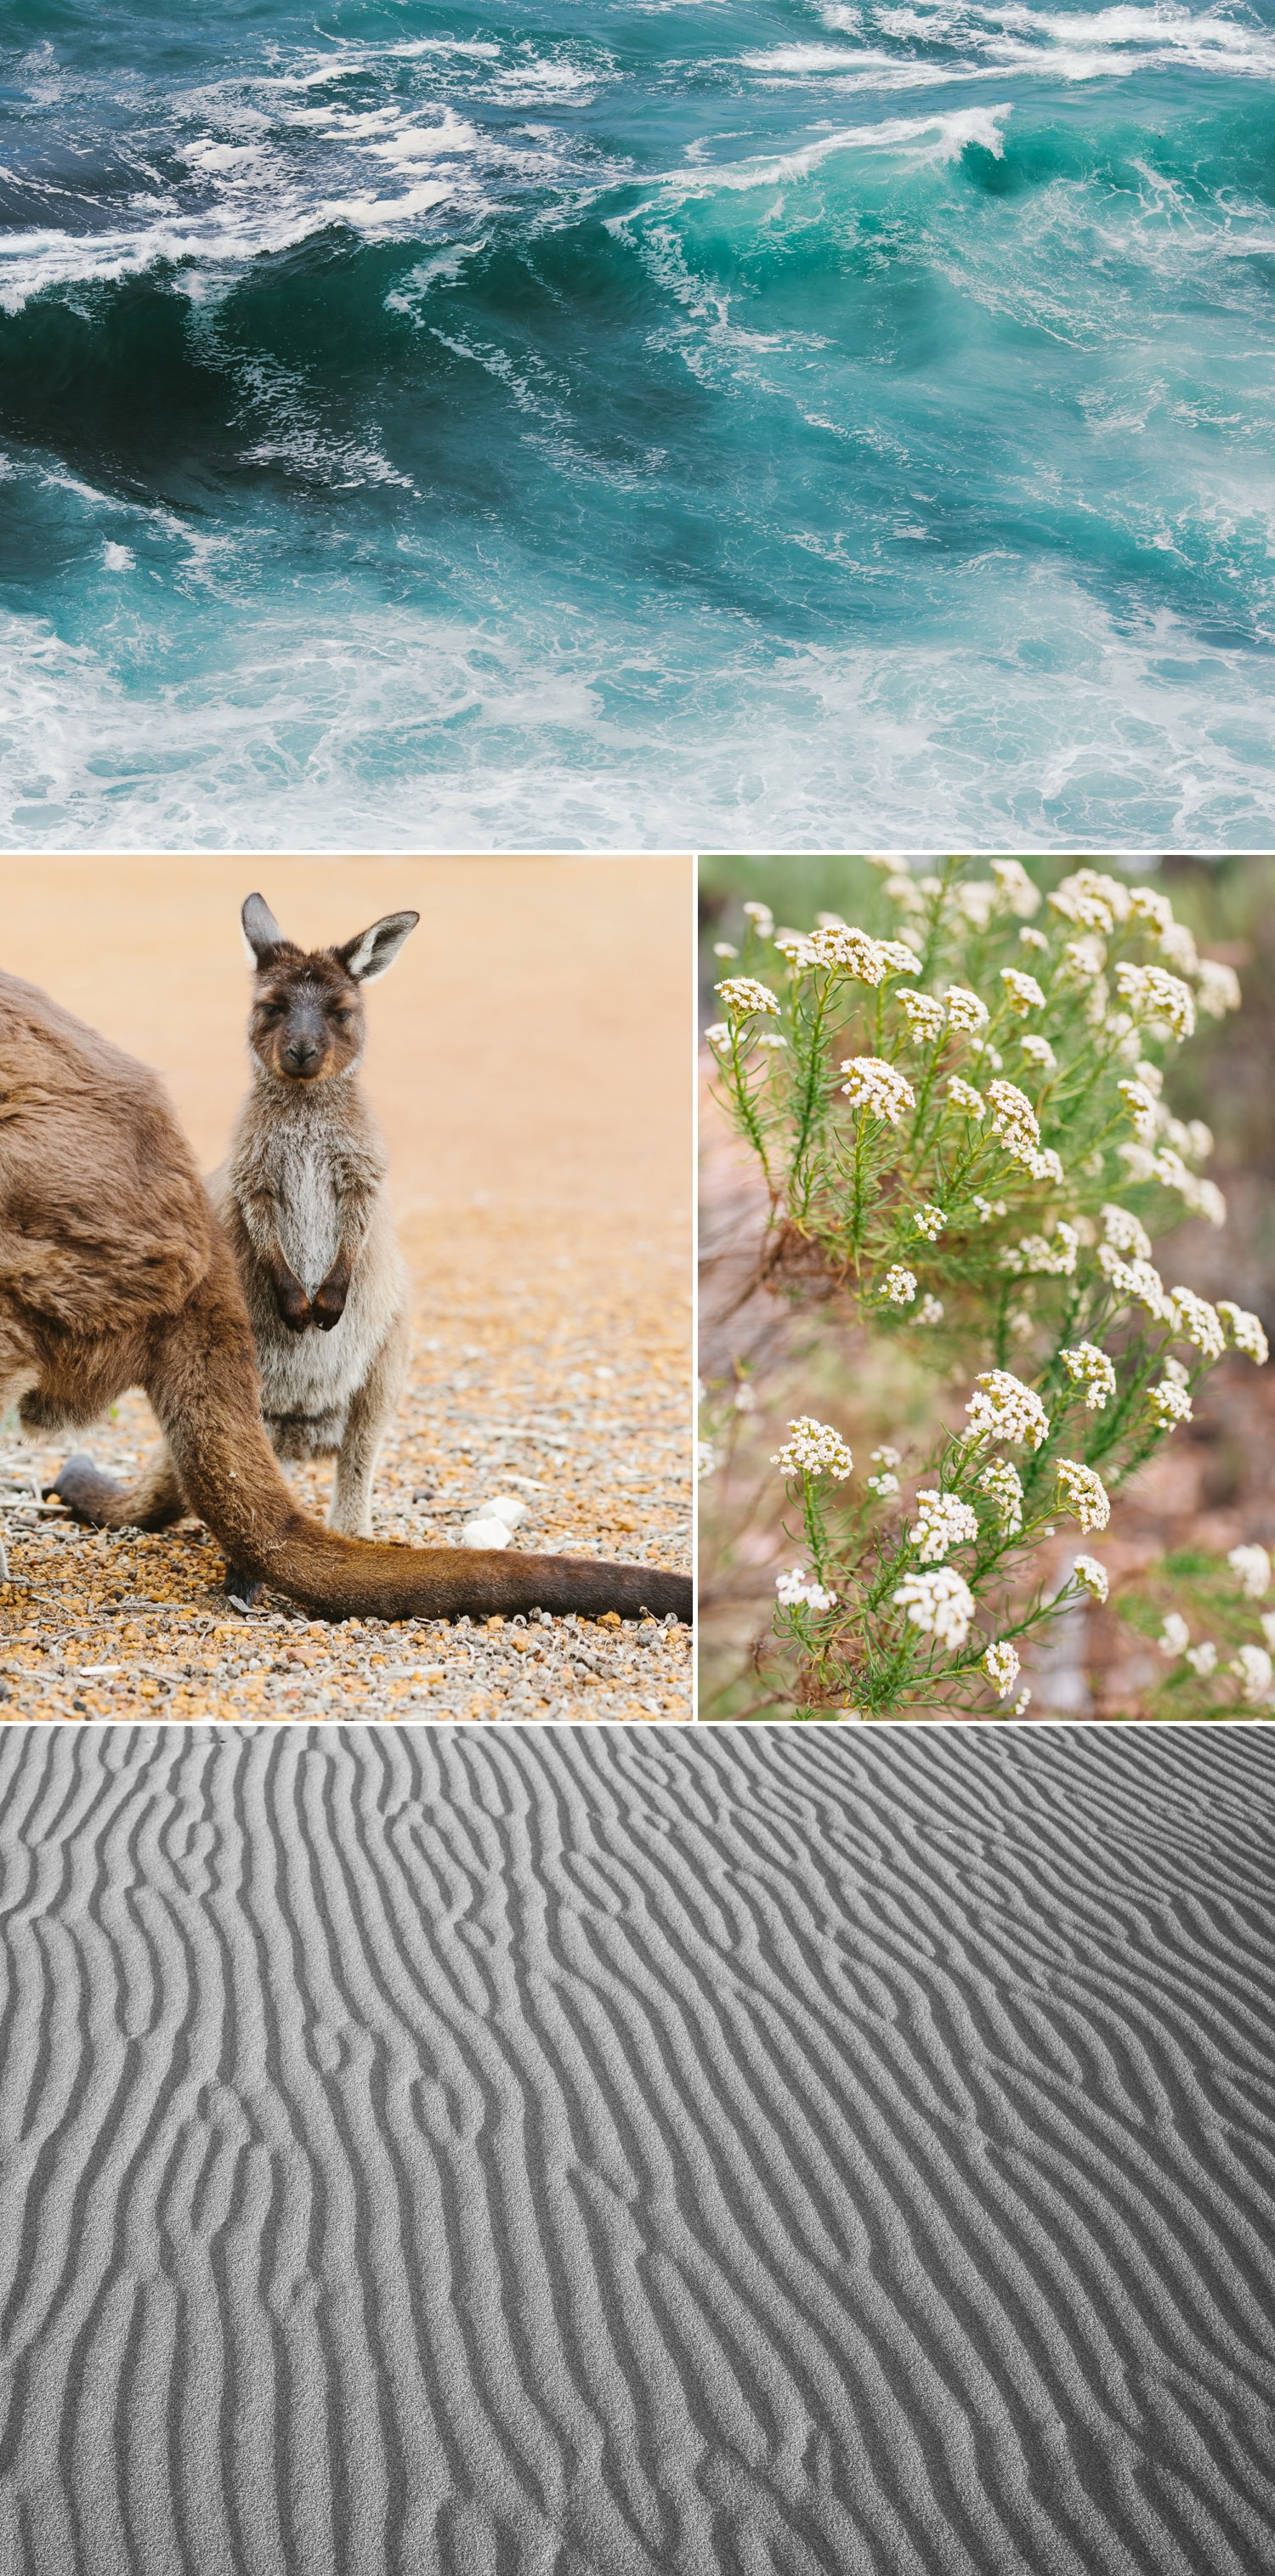 cameron-zegers-seattle-photographer-kangaroo-island-australia-travel_0011.jpg